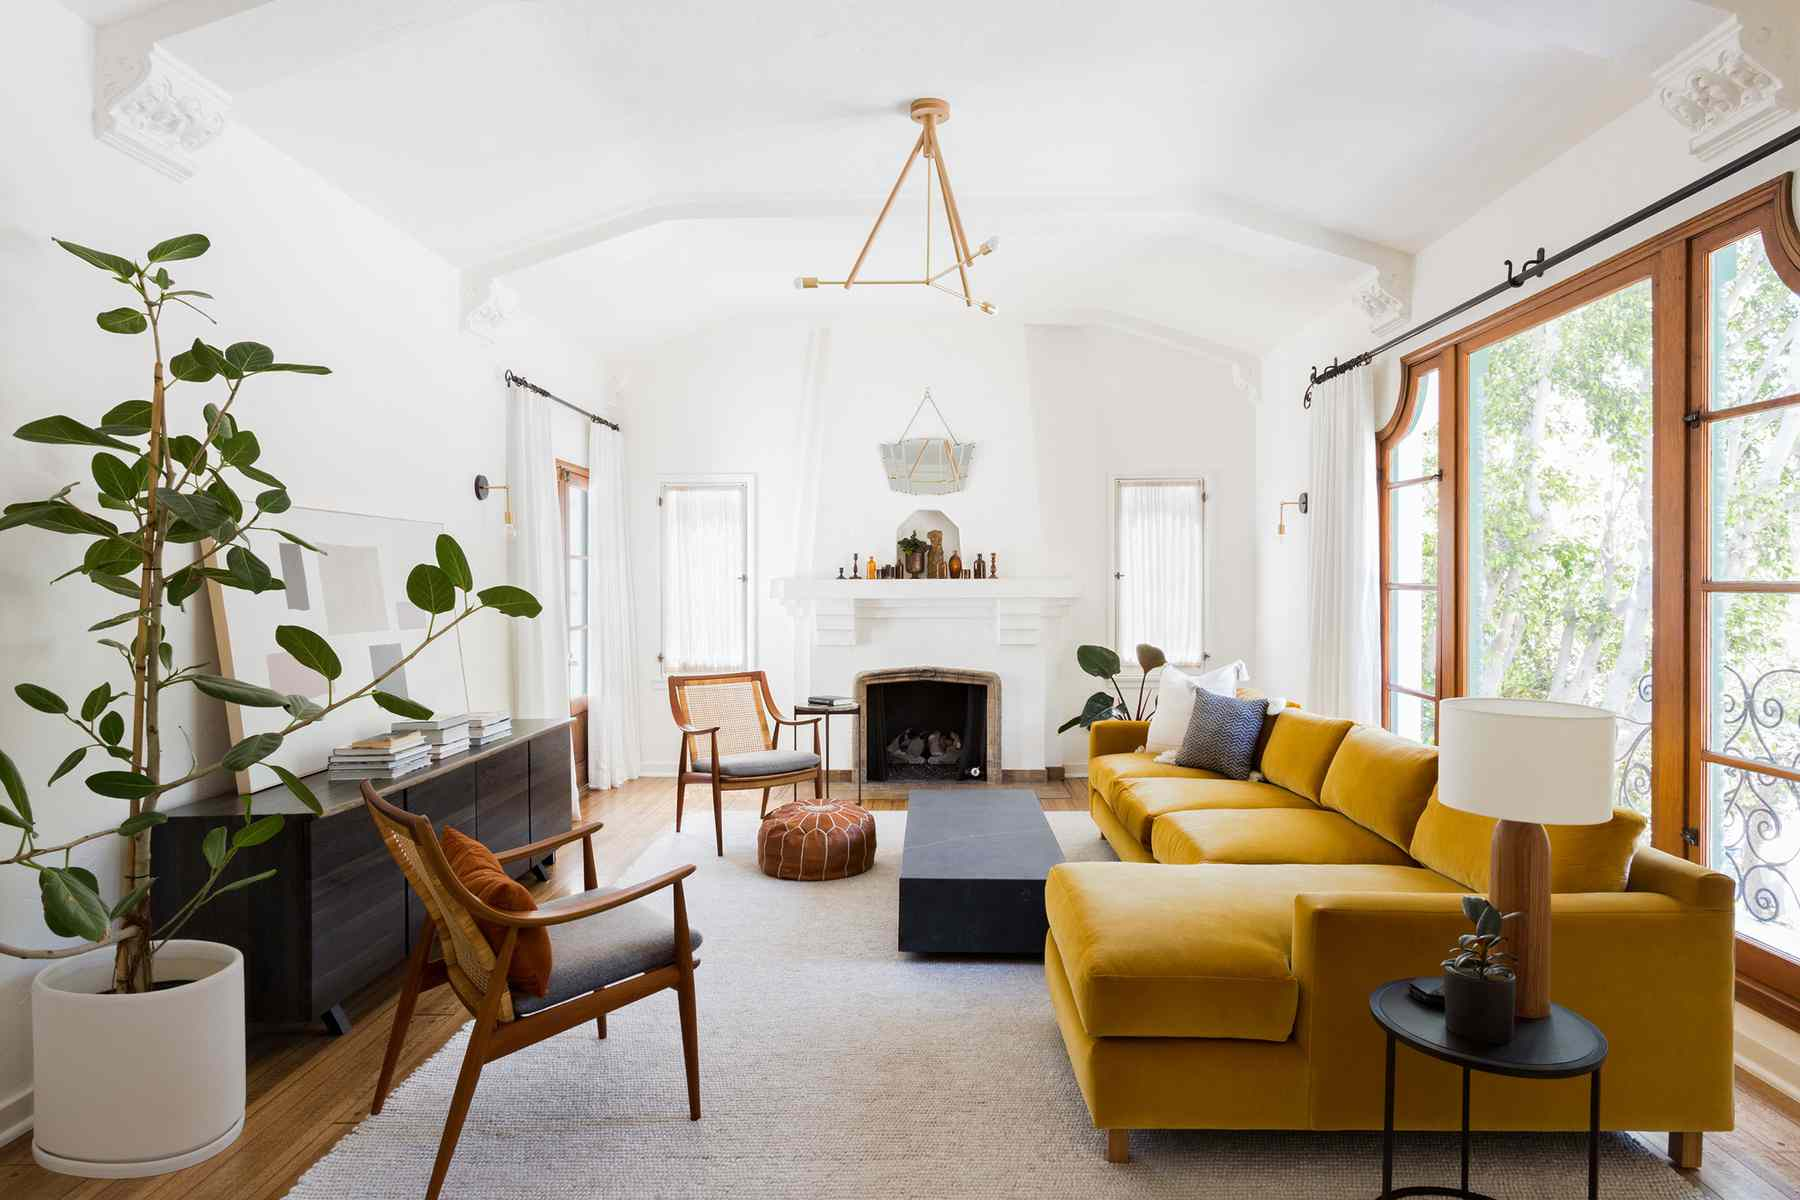 Eclectic living room with mustard velvet sofa and wood accent chairs